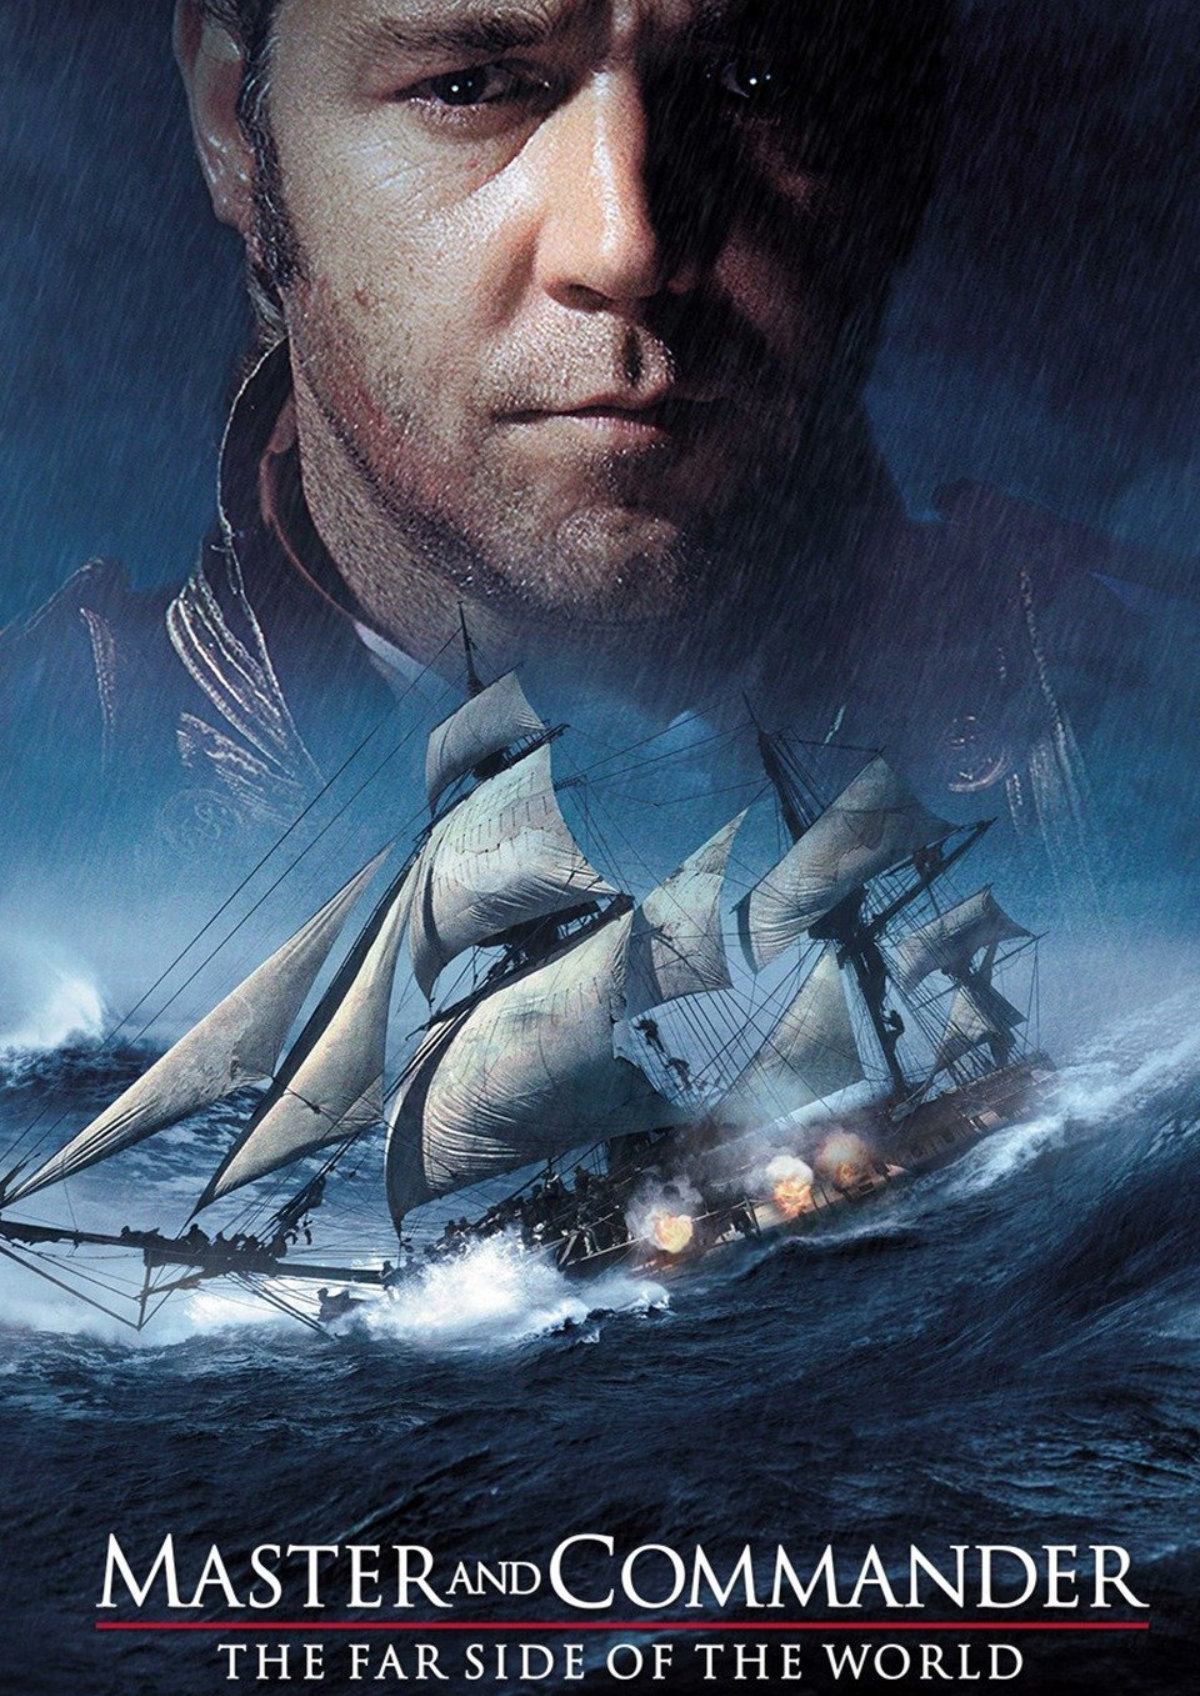 'Master And Commander: The Far Side Of The World' movie poster